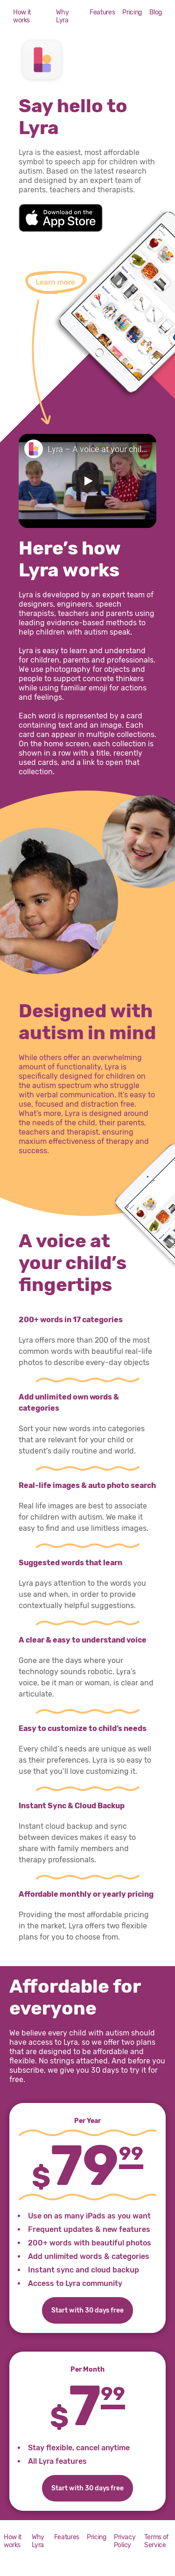 Example of Design for People & Society, Mobile Landing Page by getlyra.com | Mobile Landing Page Design